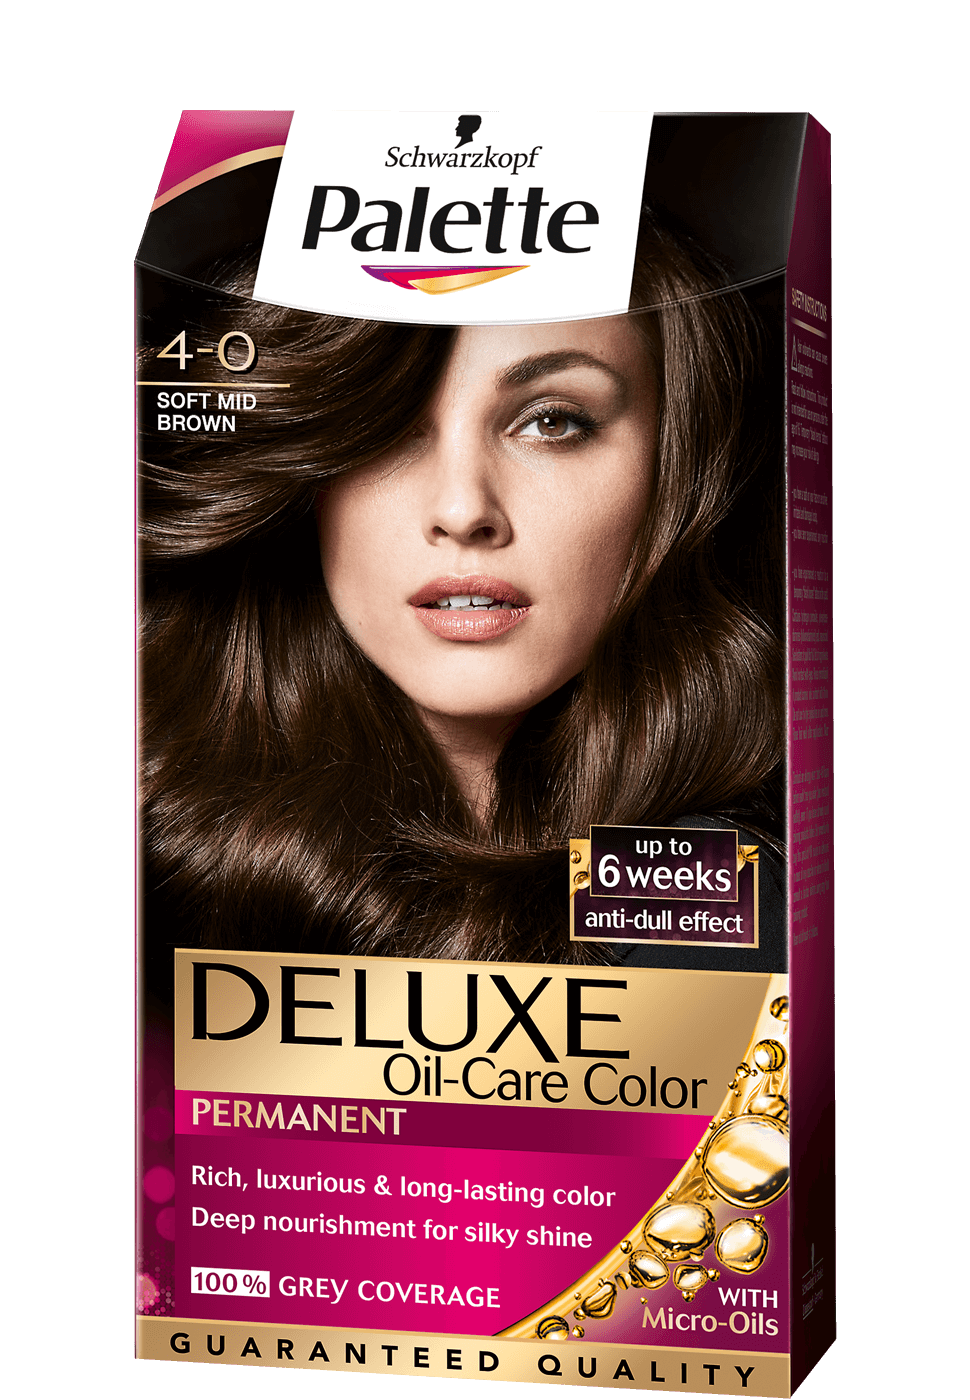 palette_com_deluxe_baseline_4-0_soft_mid_brown_970x1400